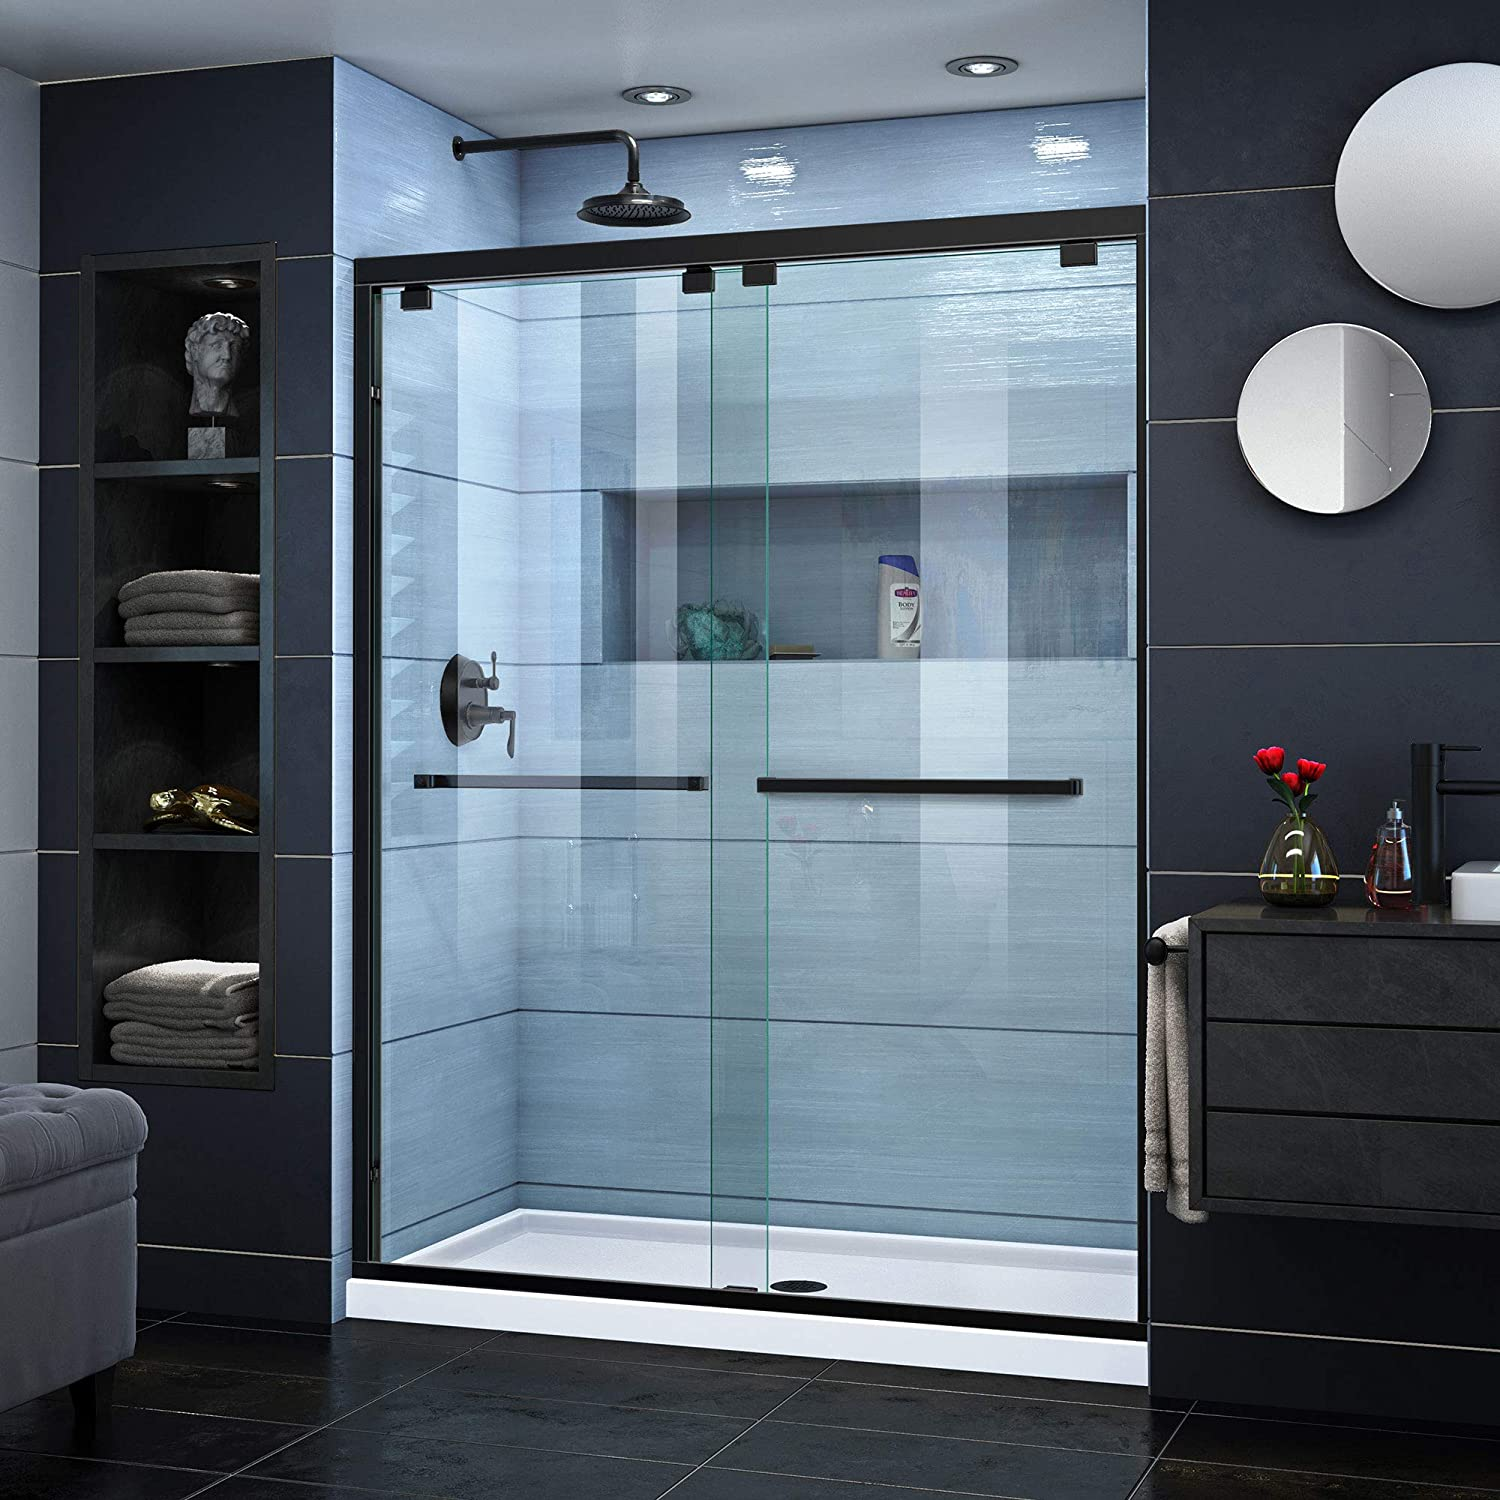 DreamLine Encore 50-54 in. W x 76 in. H Frameless Semi-Frameless Bypass Shower Door in Satin Black, SHDR-1654760-09